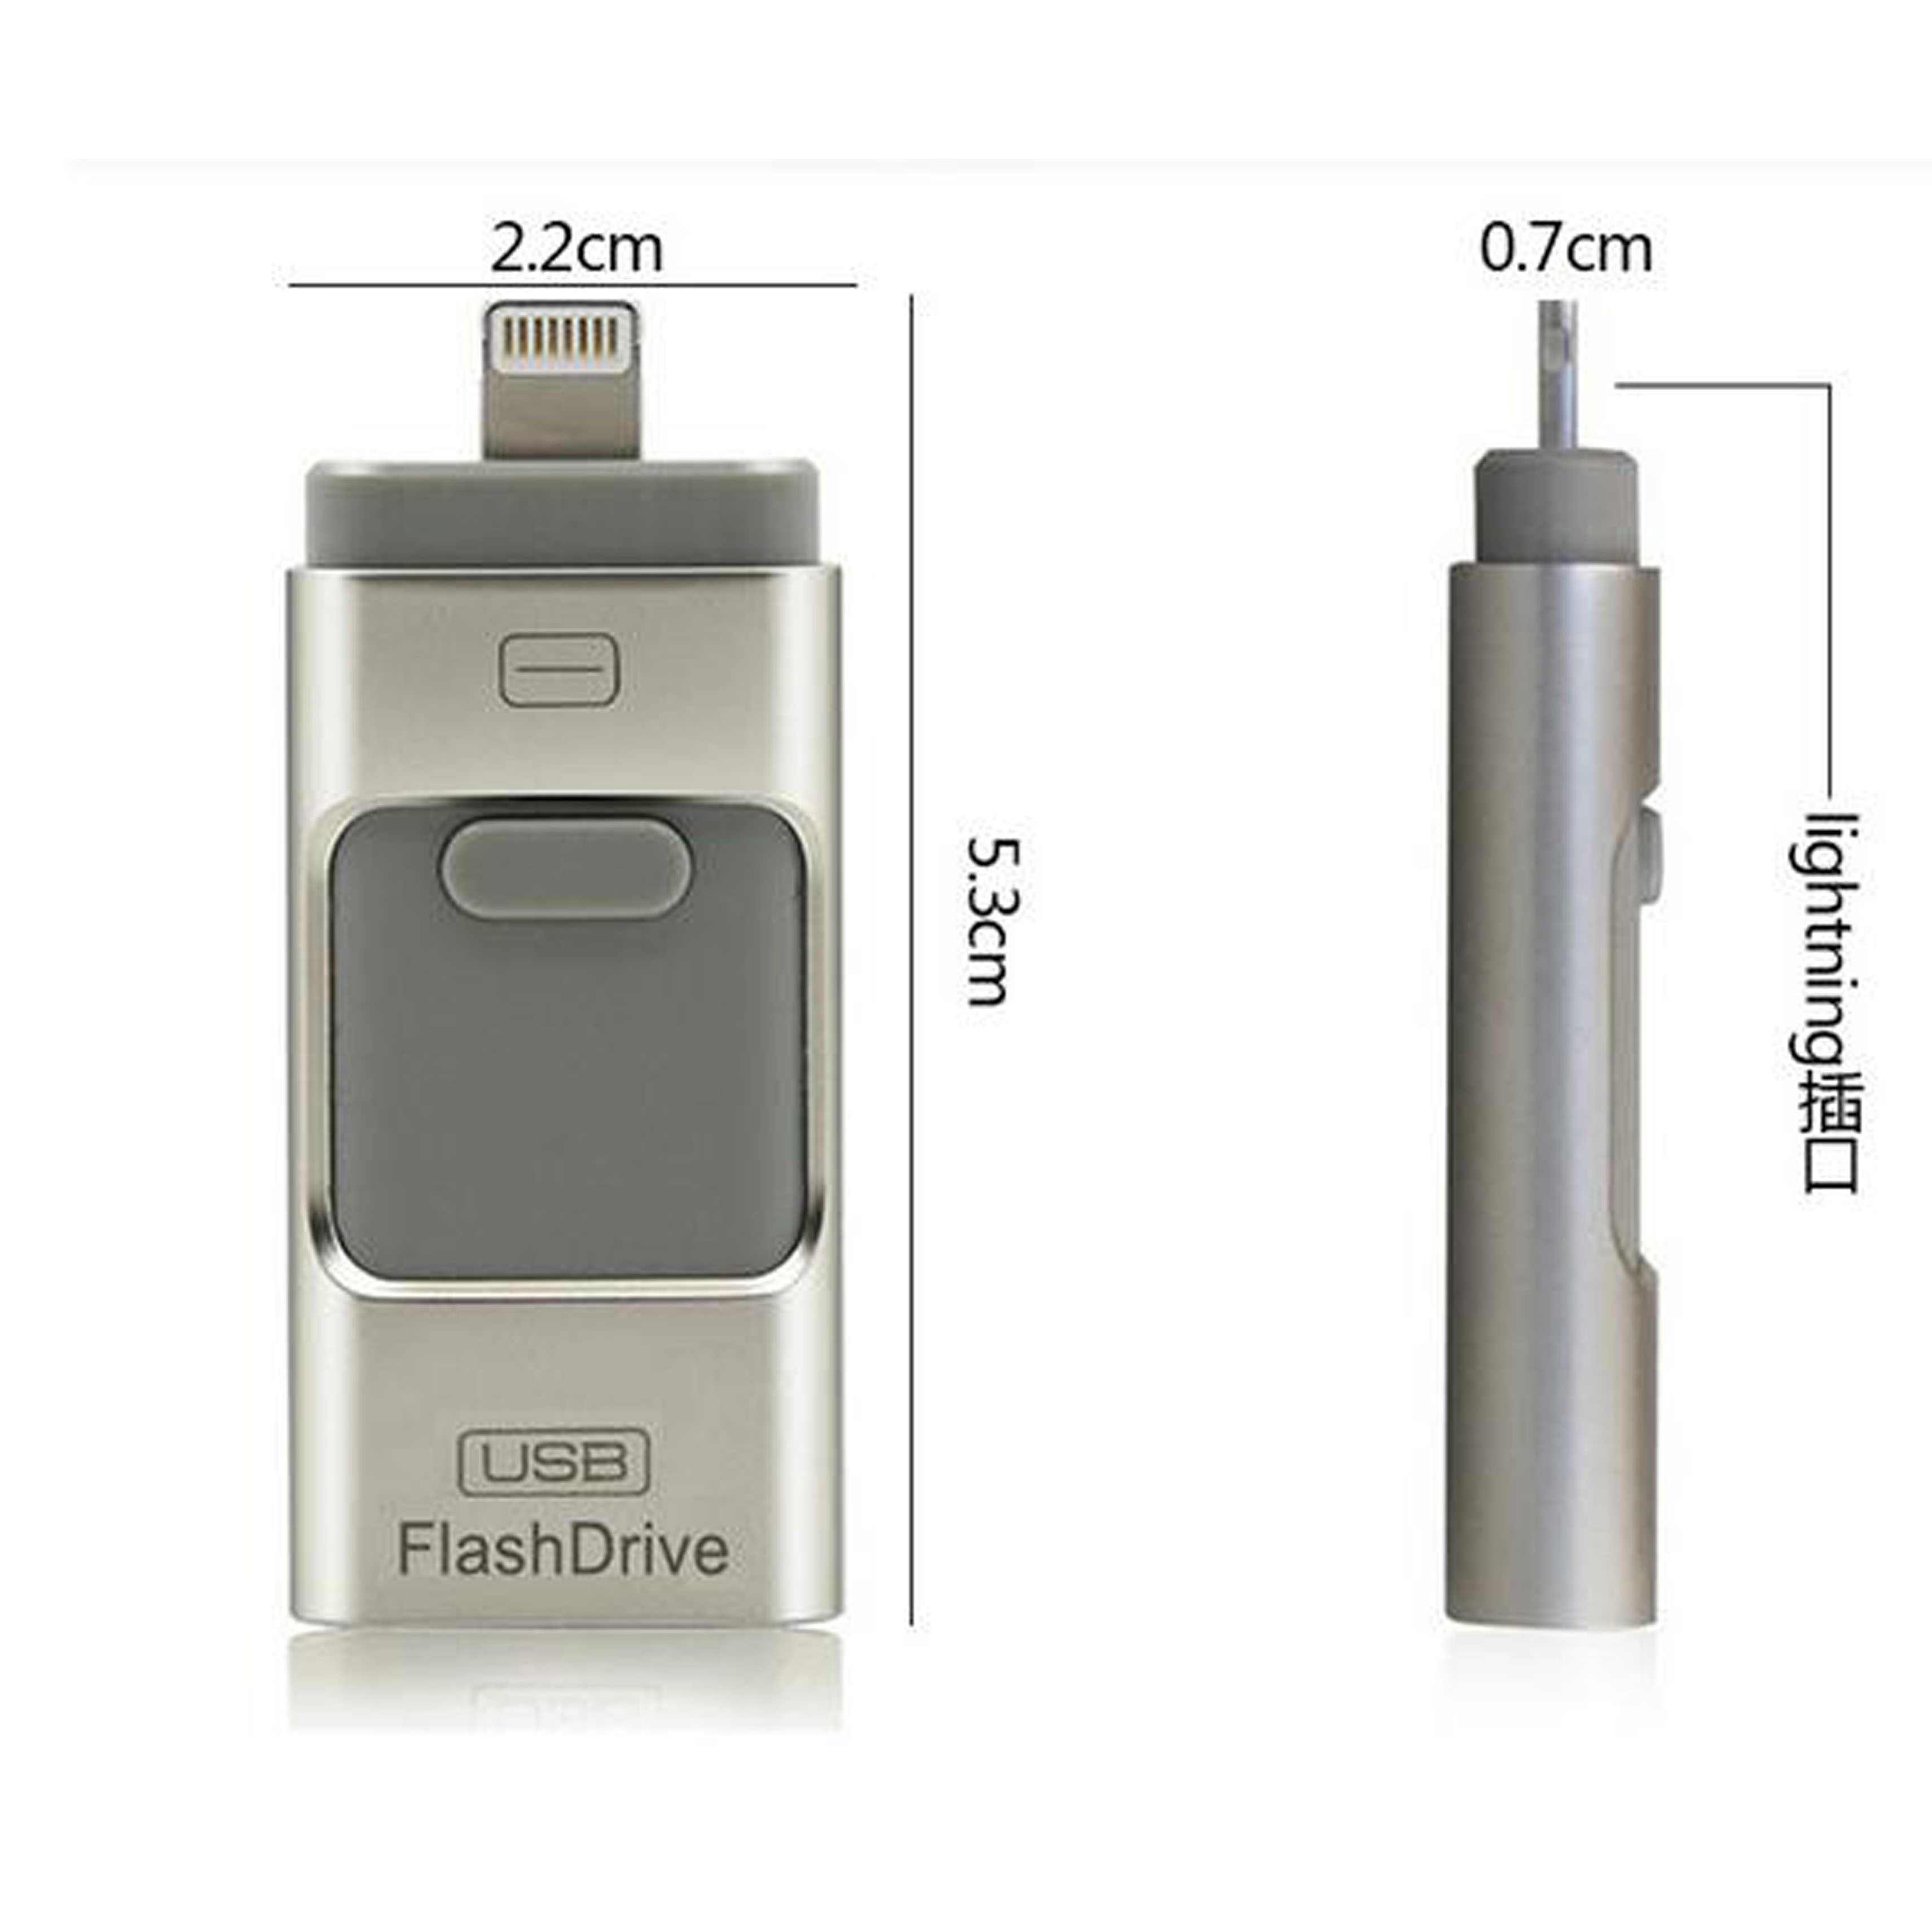 Iphone OTG USB flash drive